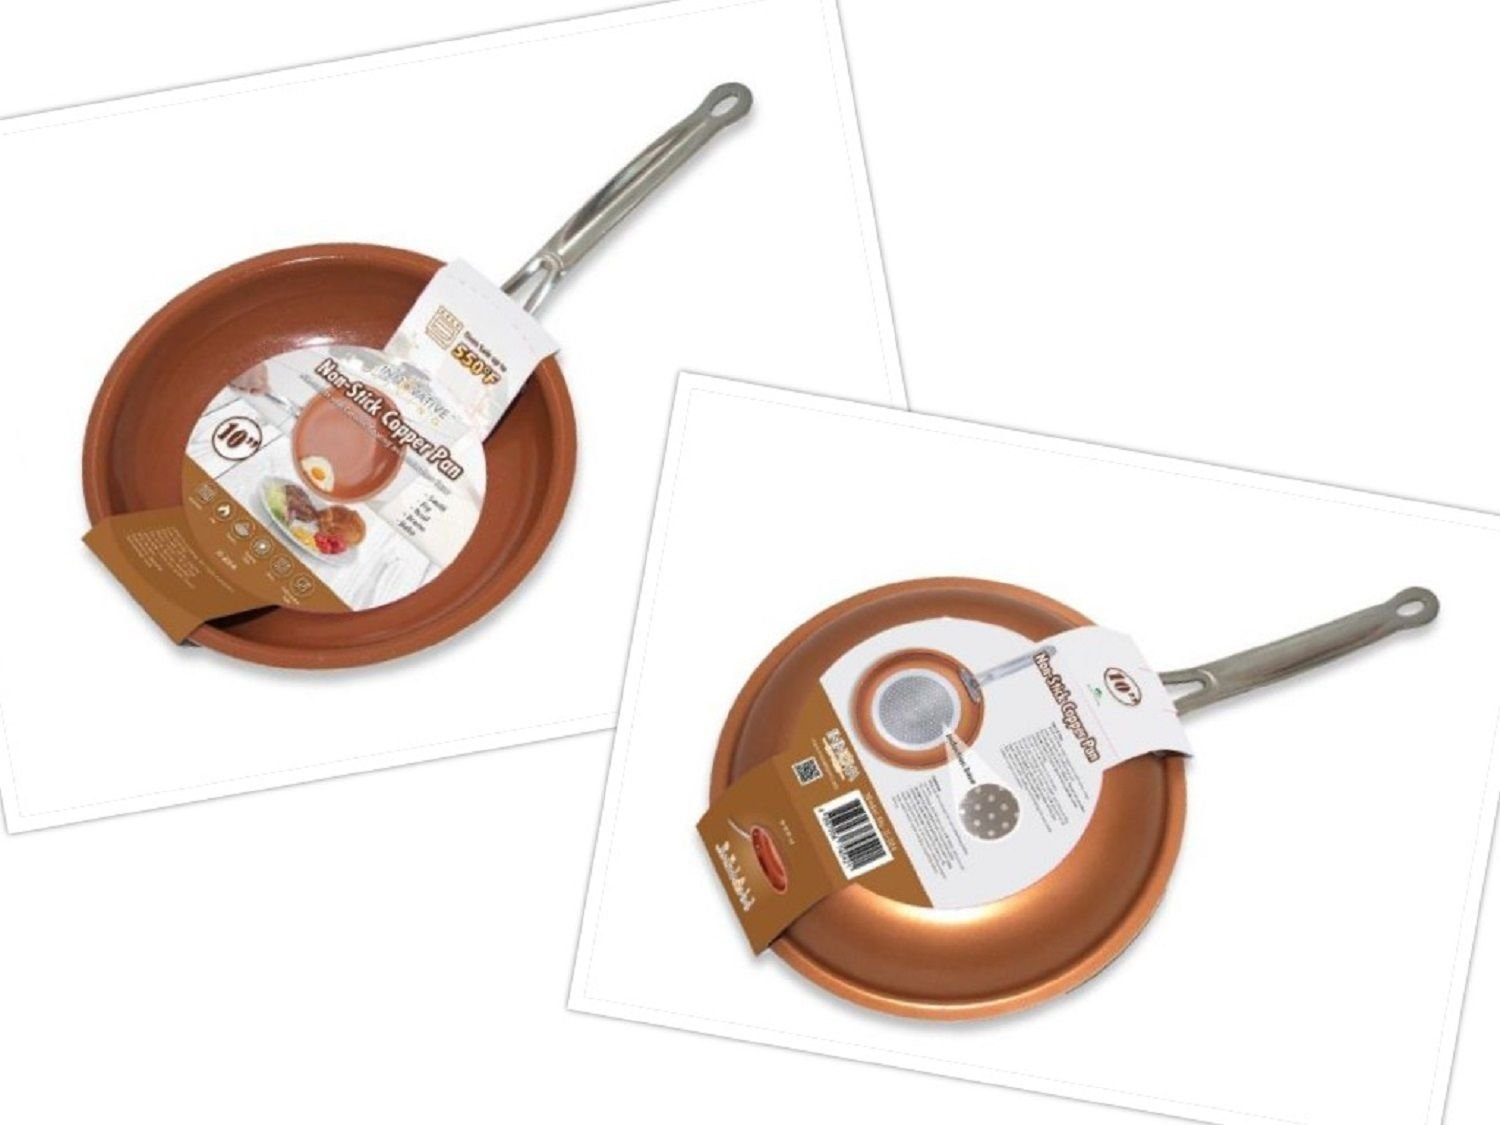 Non-stick Copper Frying Pan with Ceramic Coating Eco-Friendly Oven Safe 10 Inch